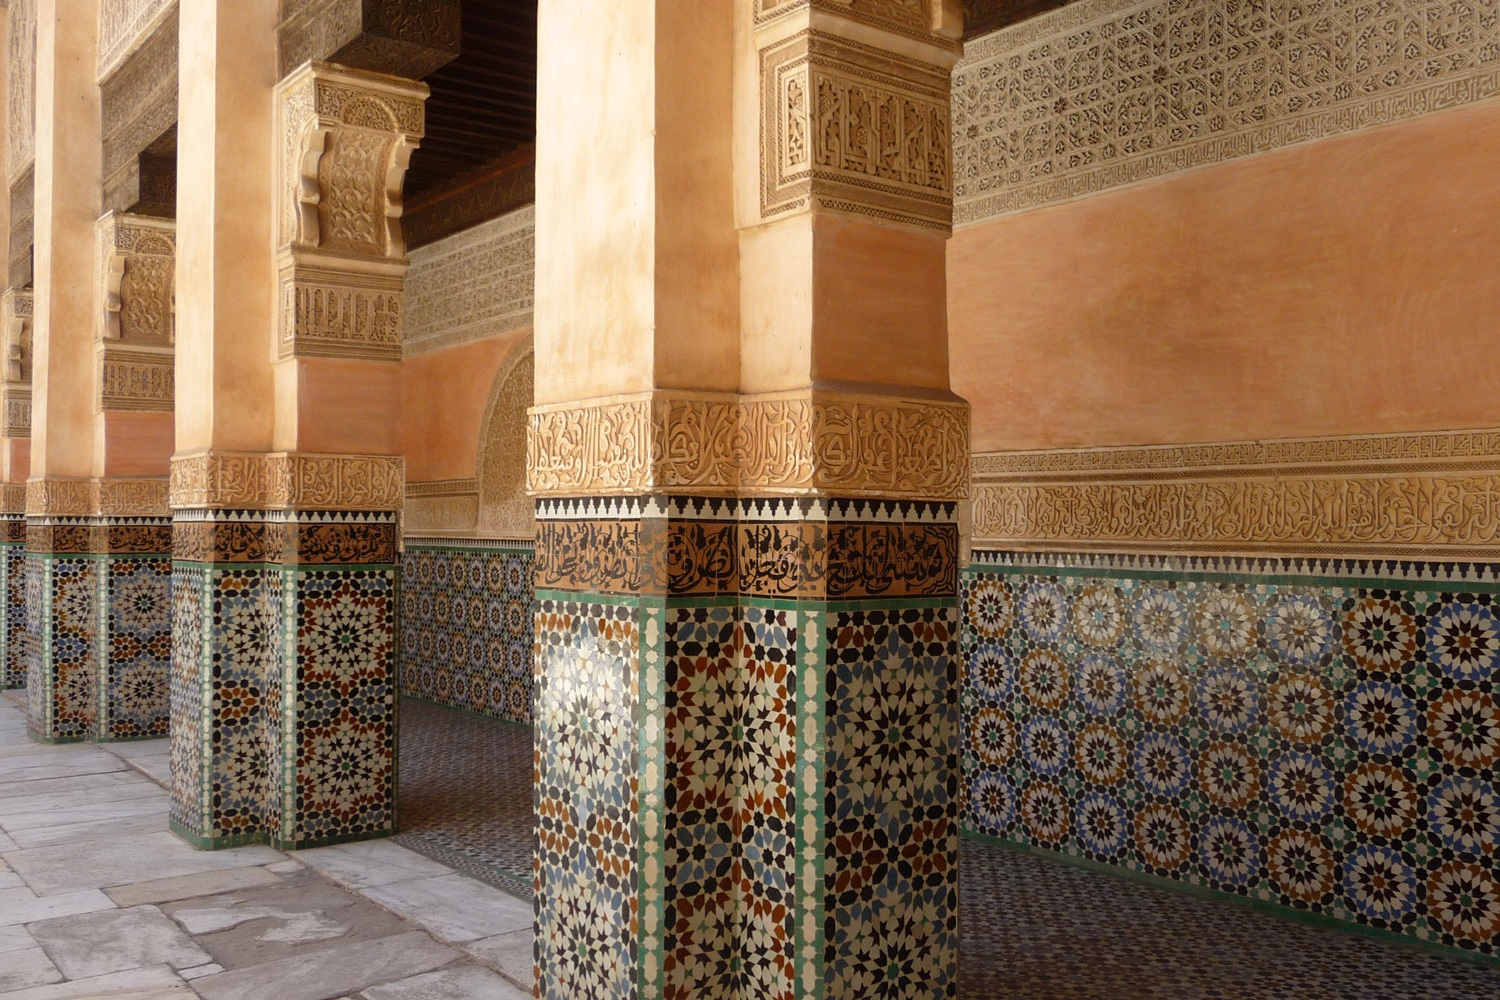 Chaos & serenity - Marrakech is about finding the balance